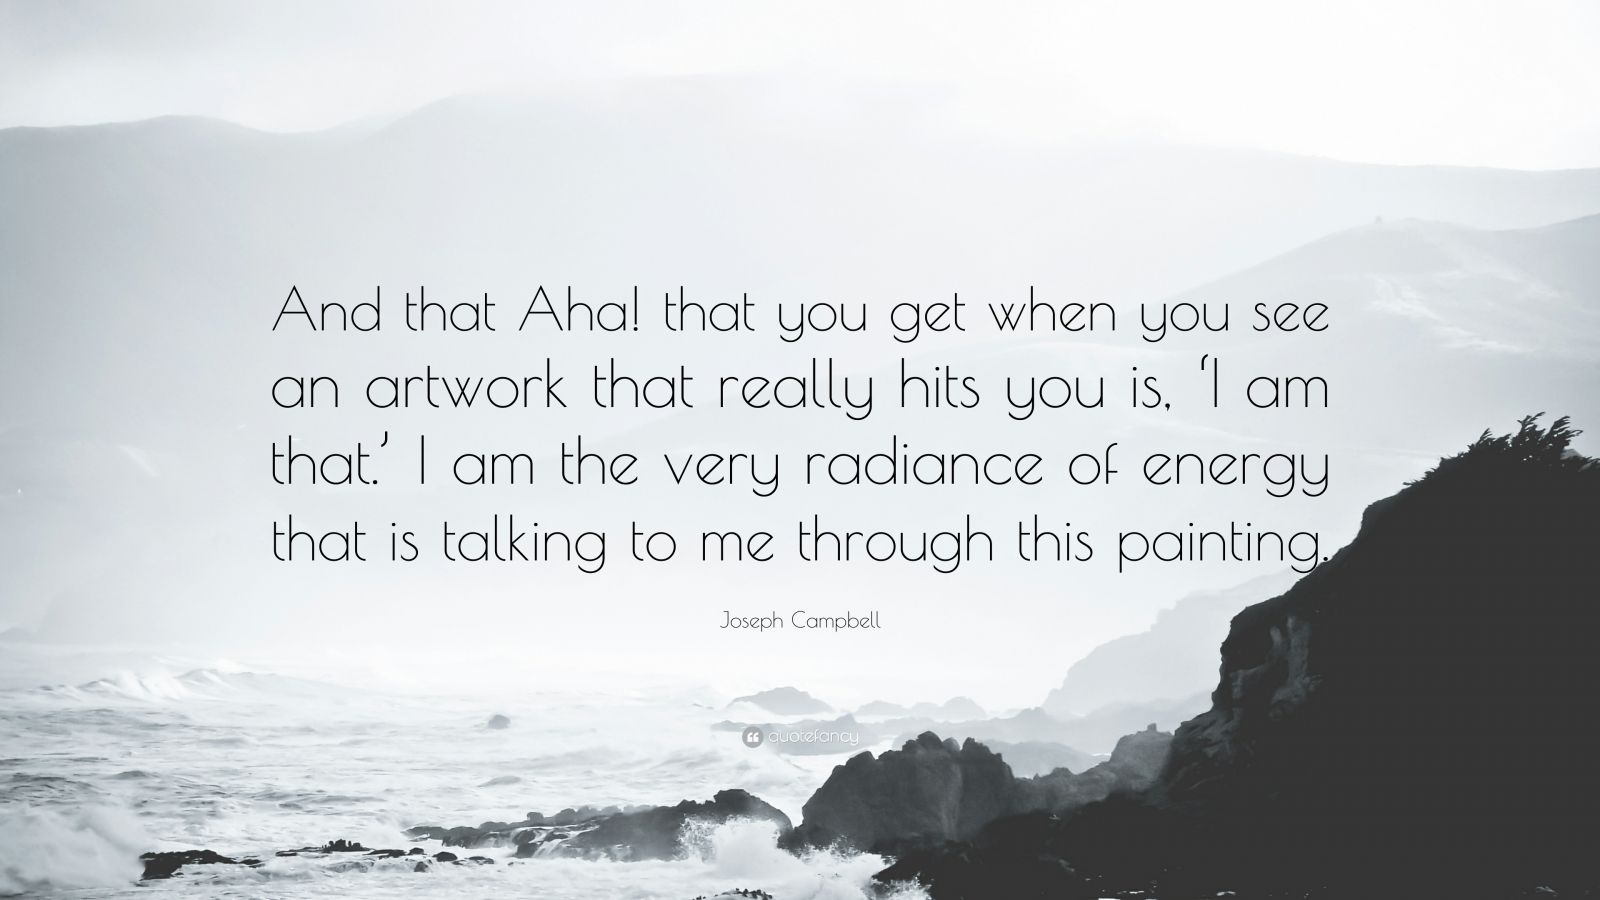 """Joseph Campbell Quote: """"And that Aha! that you get when you see an artwork that really hits you is, 'I am that.' I am the very radiance of energy that is talking to me through this painting."""""""